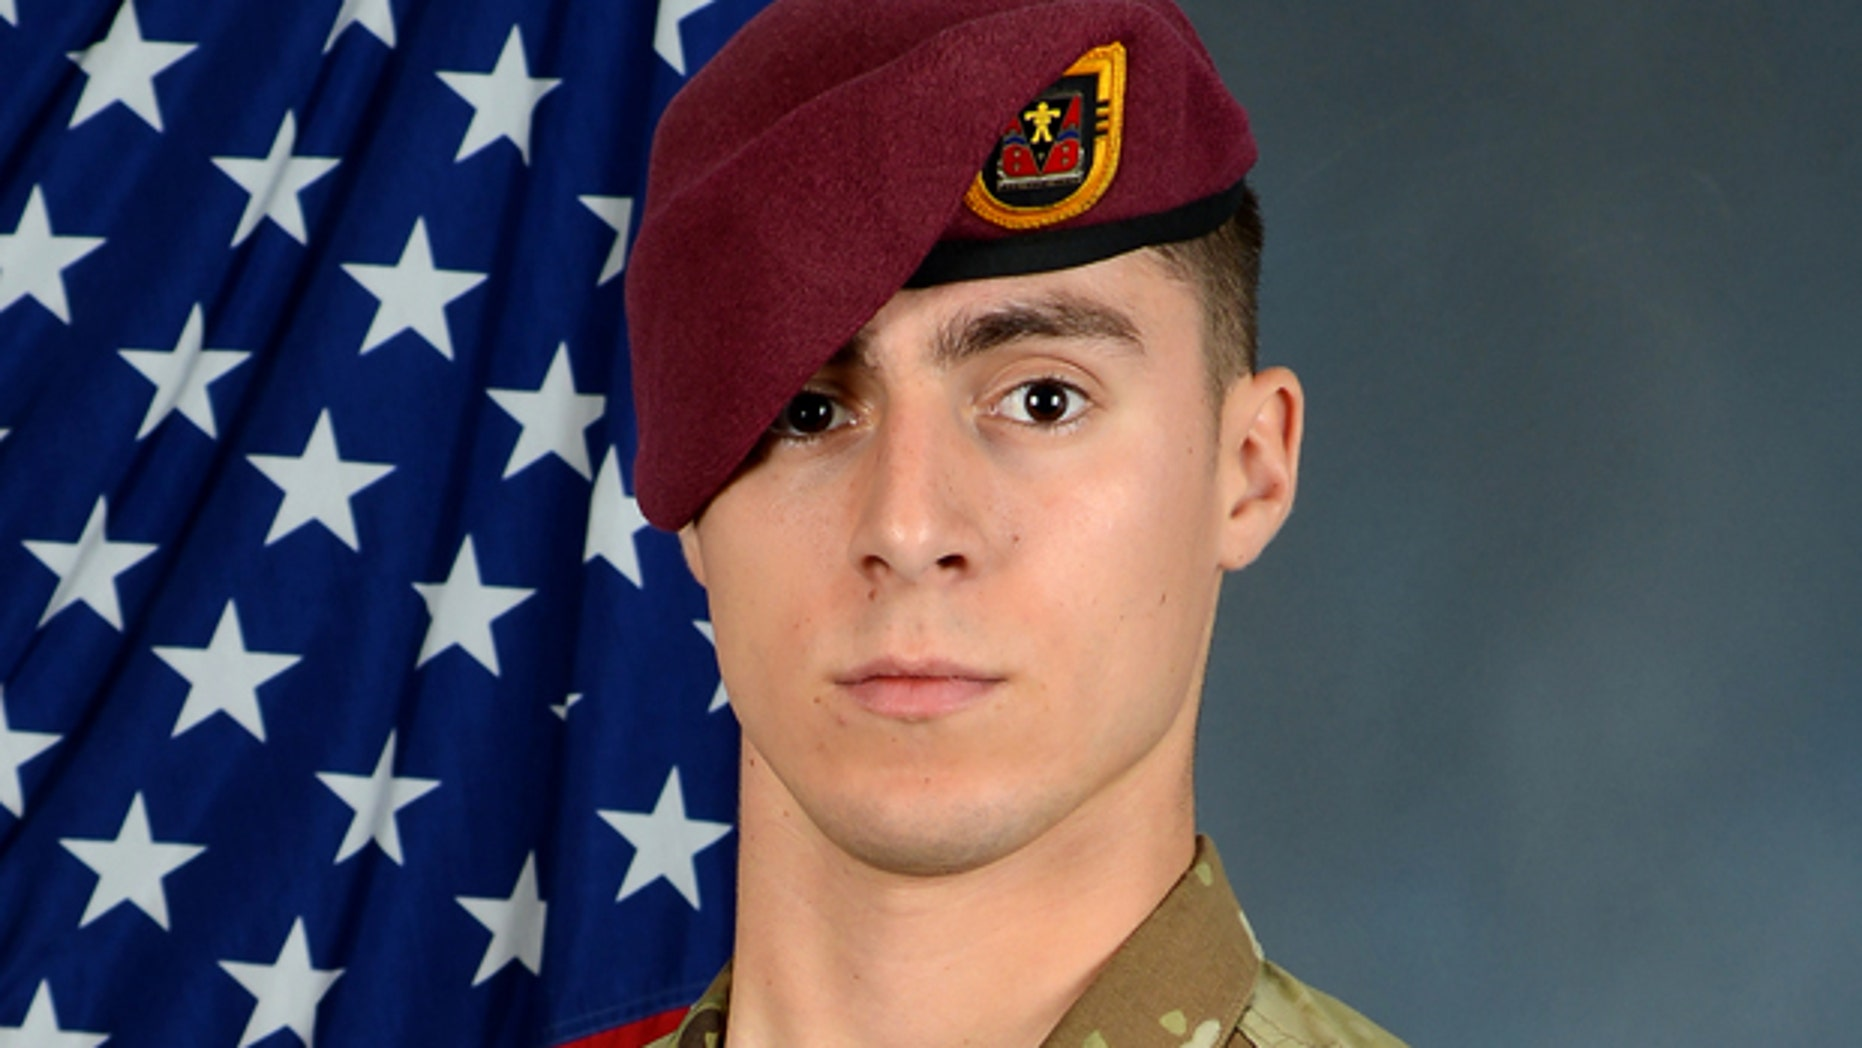 Spc. Gabriel D. Conde, 22, of Loveland, Colorado, was killed while supporting a counter-terrorism operation in Eastern Afghanistan on Monday.